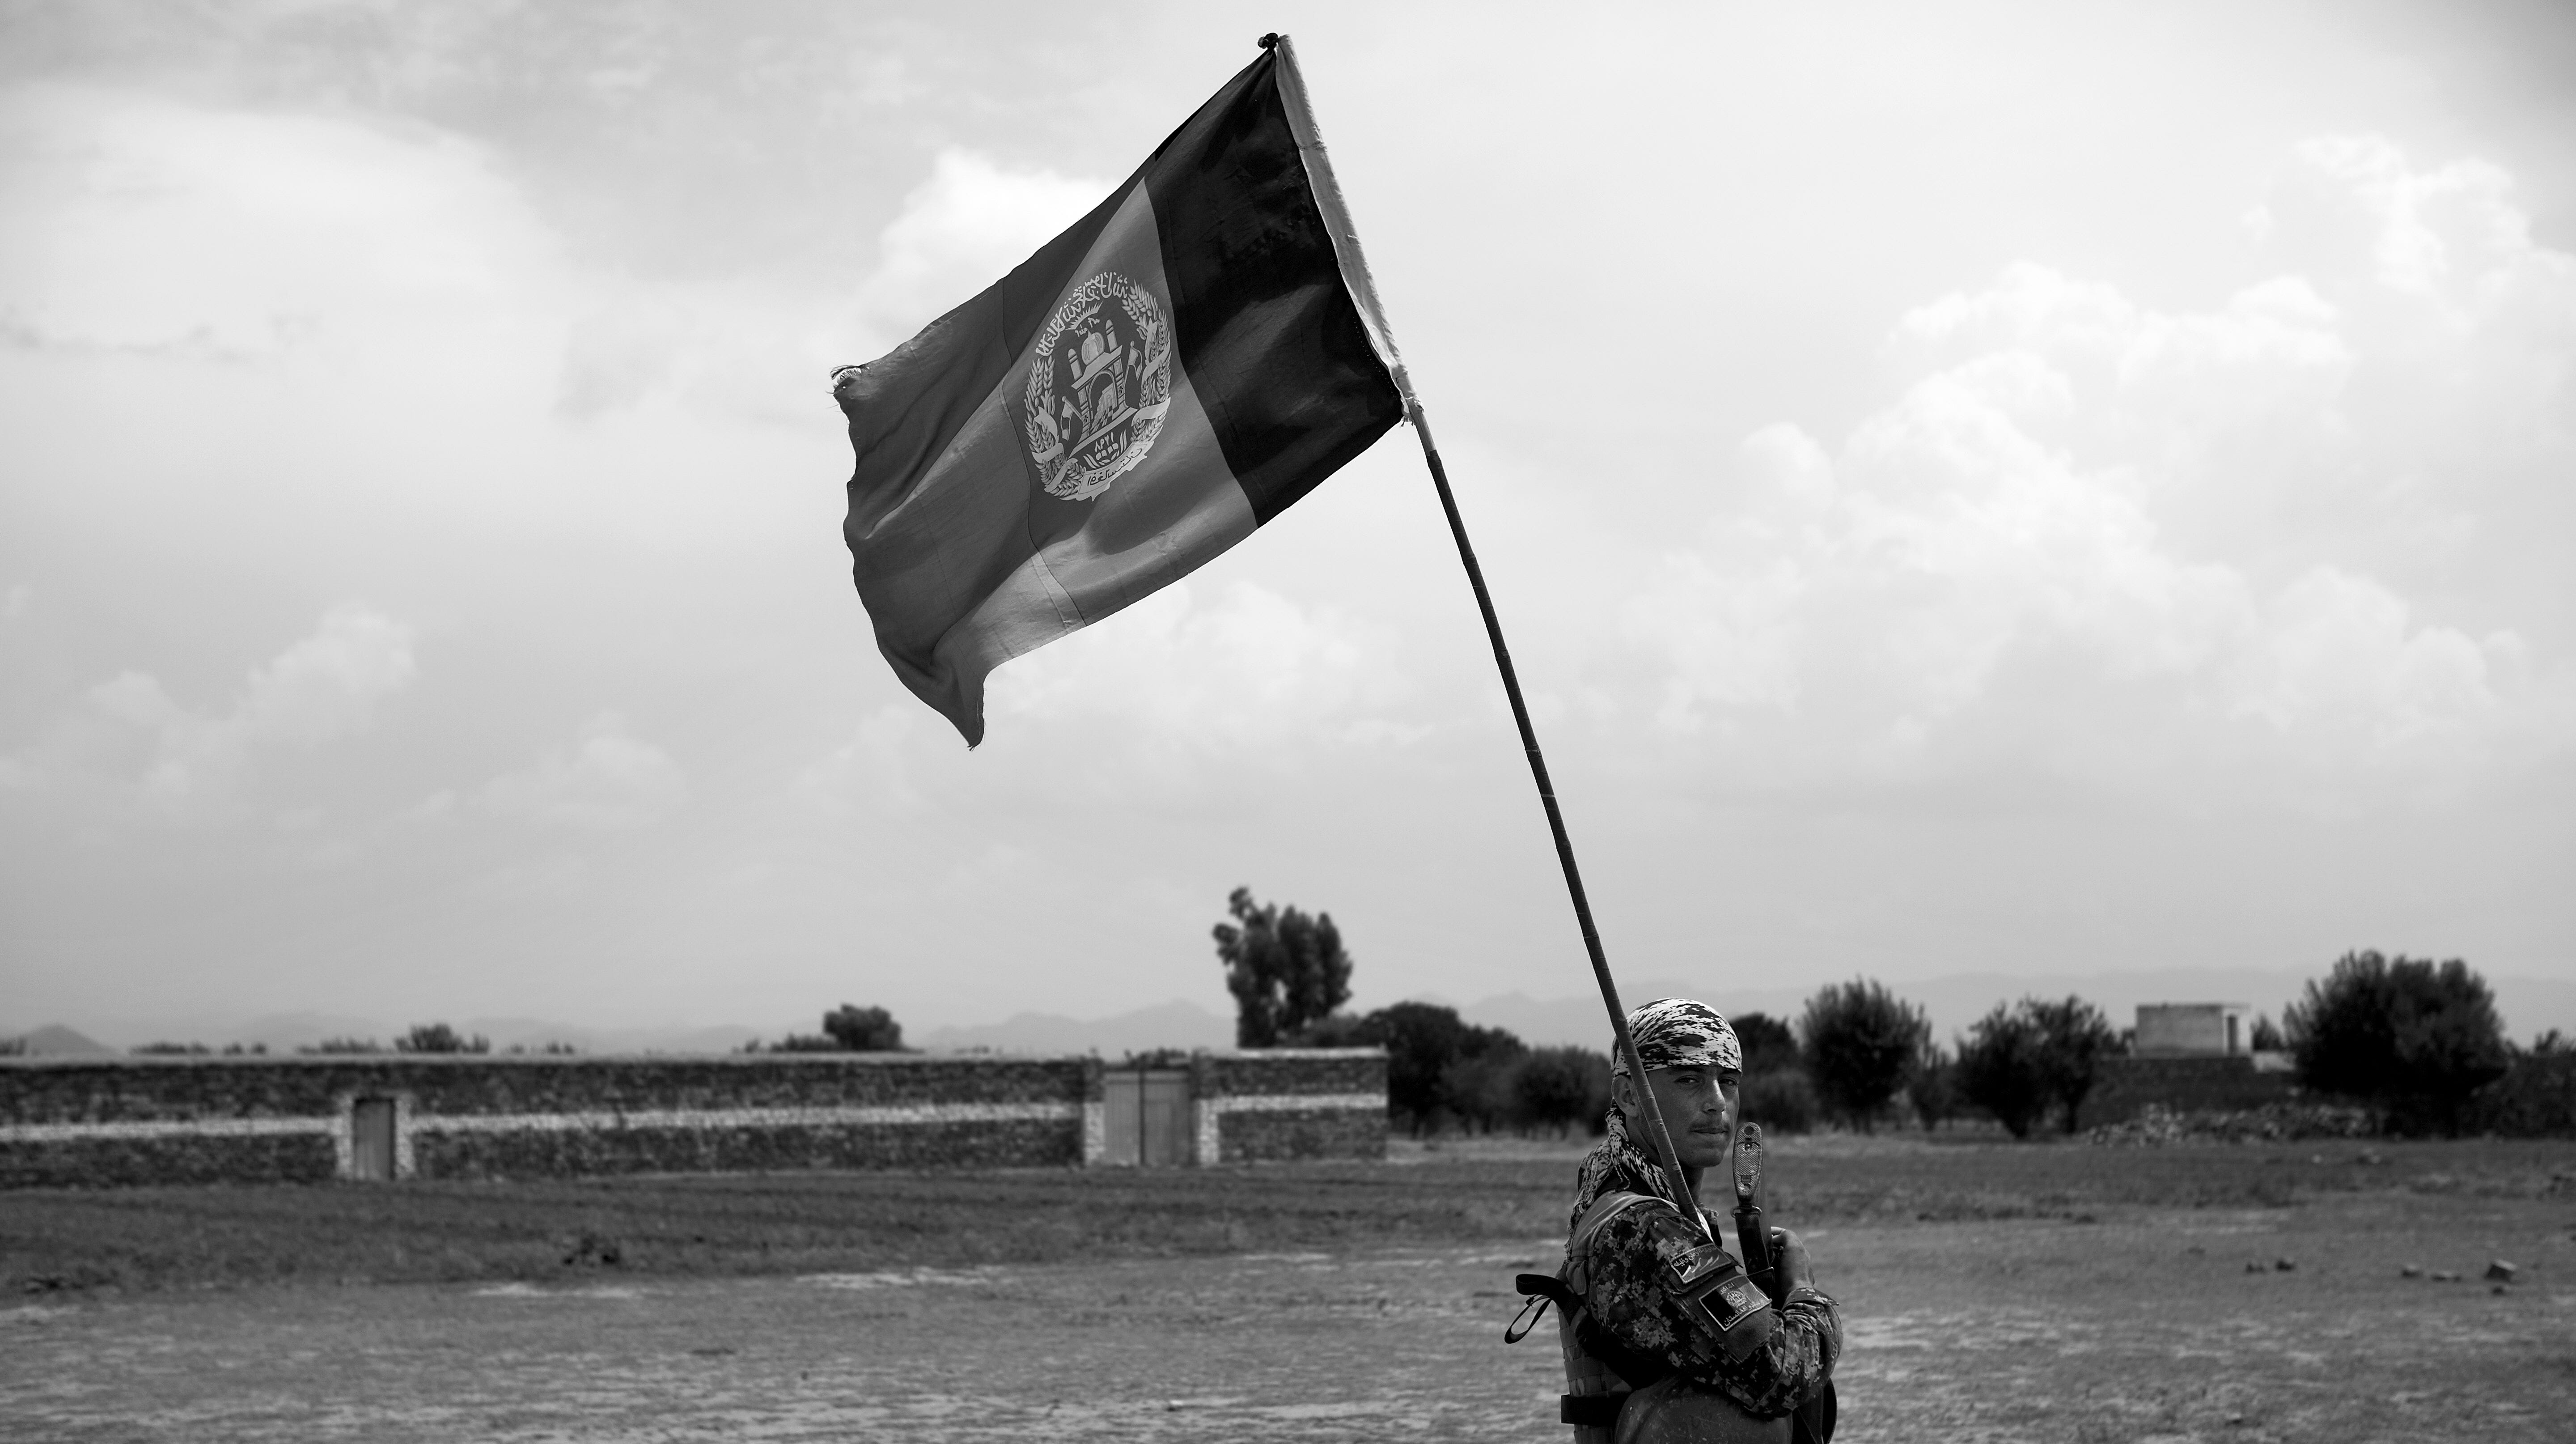 An Afghan National Army soldier carries a flag on a patrol.